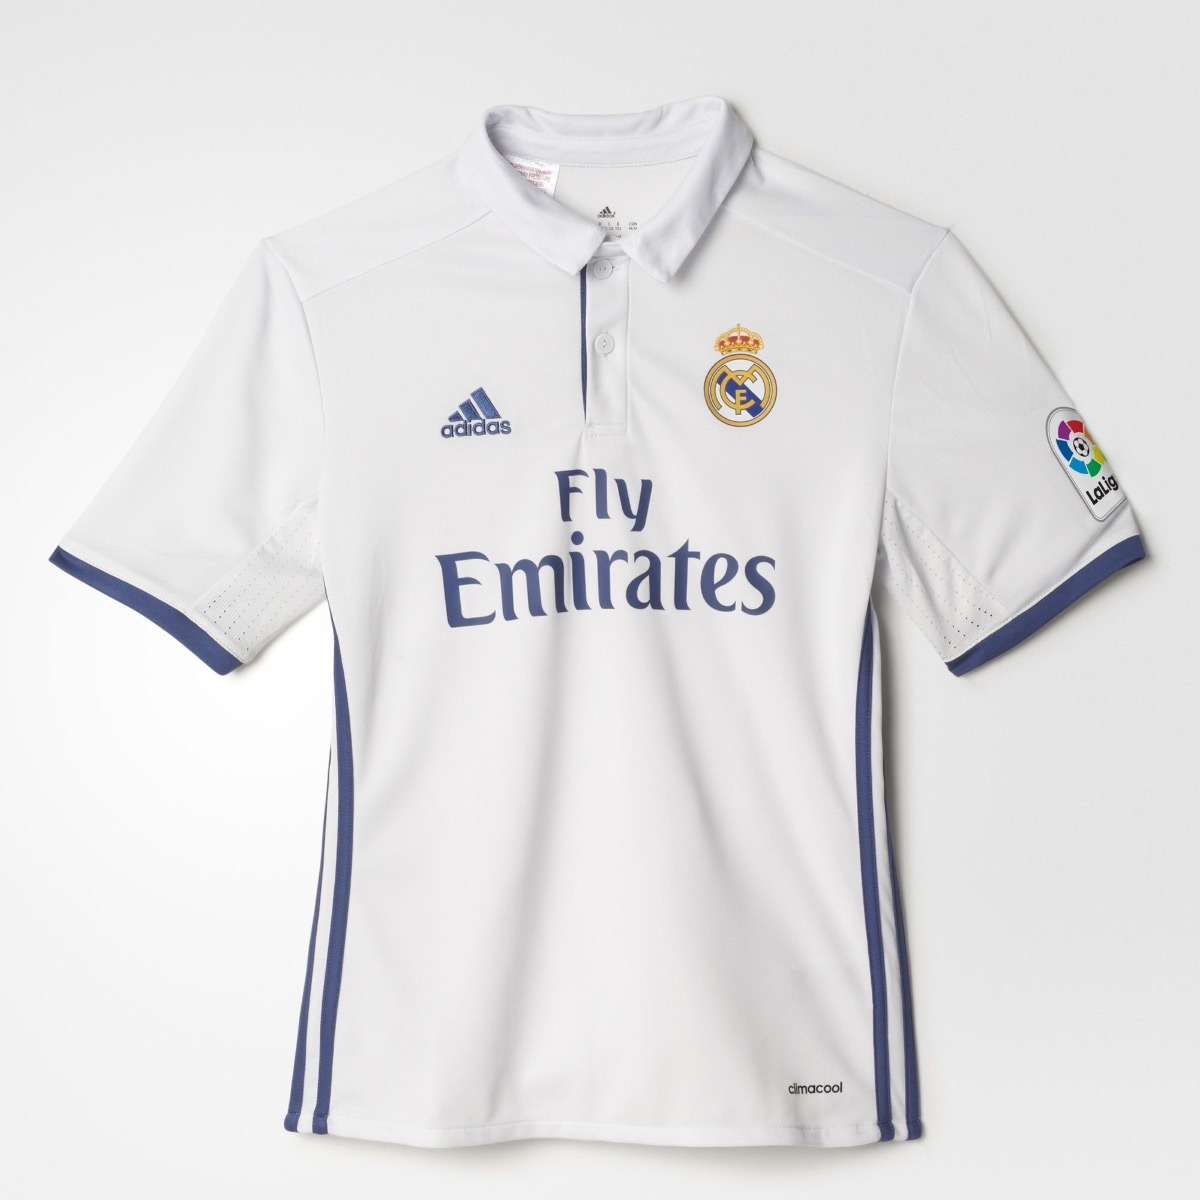 57d7bbe2cb8b4 Playera Jersey adidas Real Madrid De Local Para Niños -   464.55 en ...